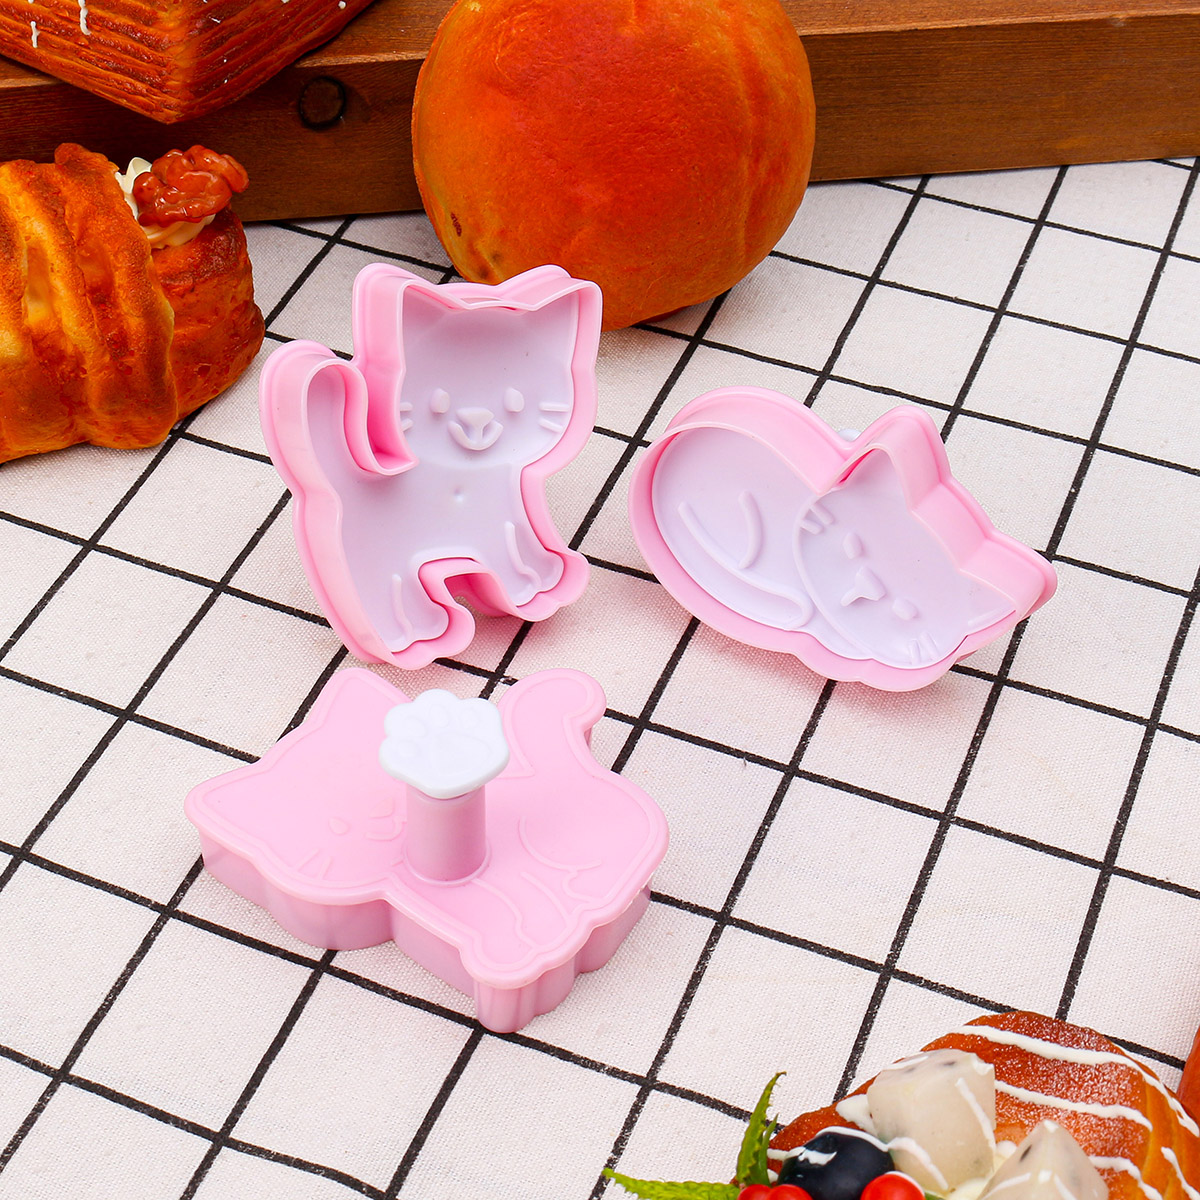 3Pcs/Set Cat Cookie Biscuit Plunger Cutter Fondant Cake Mold Baking Mould Kitchen Tools